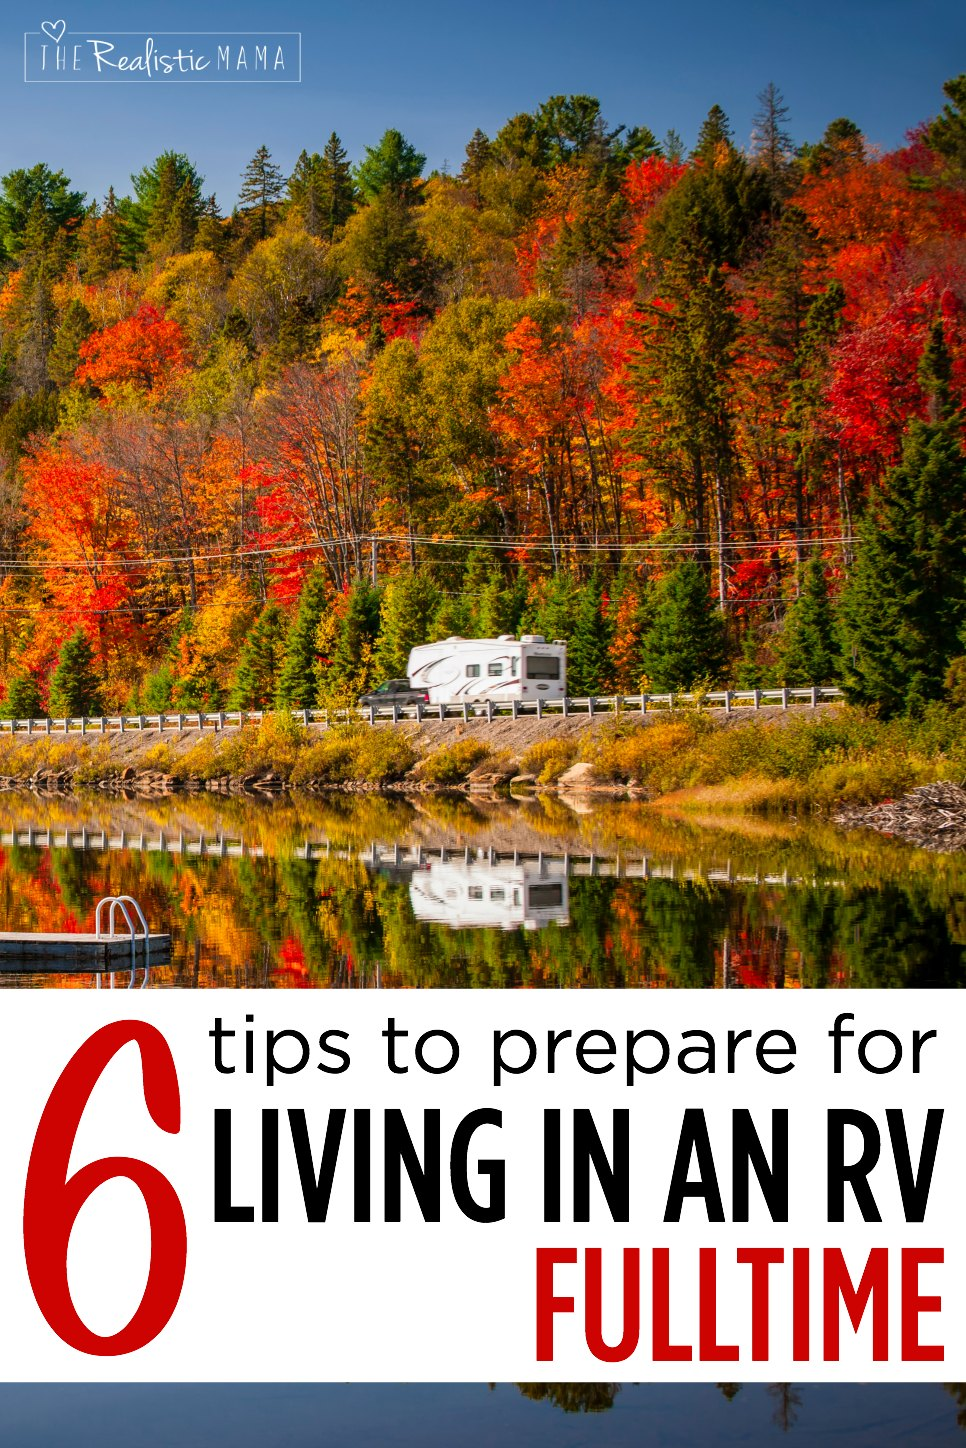 6 tips to prepare for living in an RV fulltime